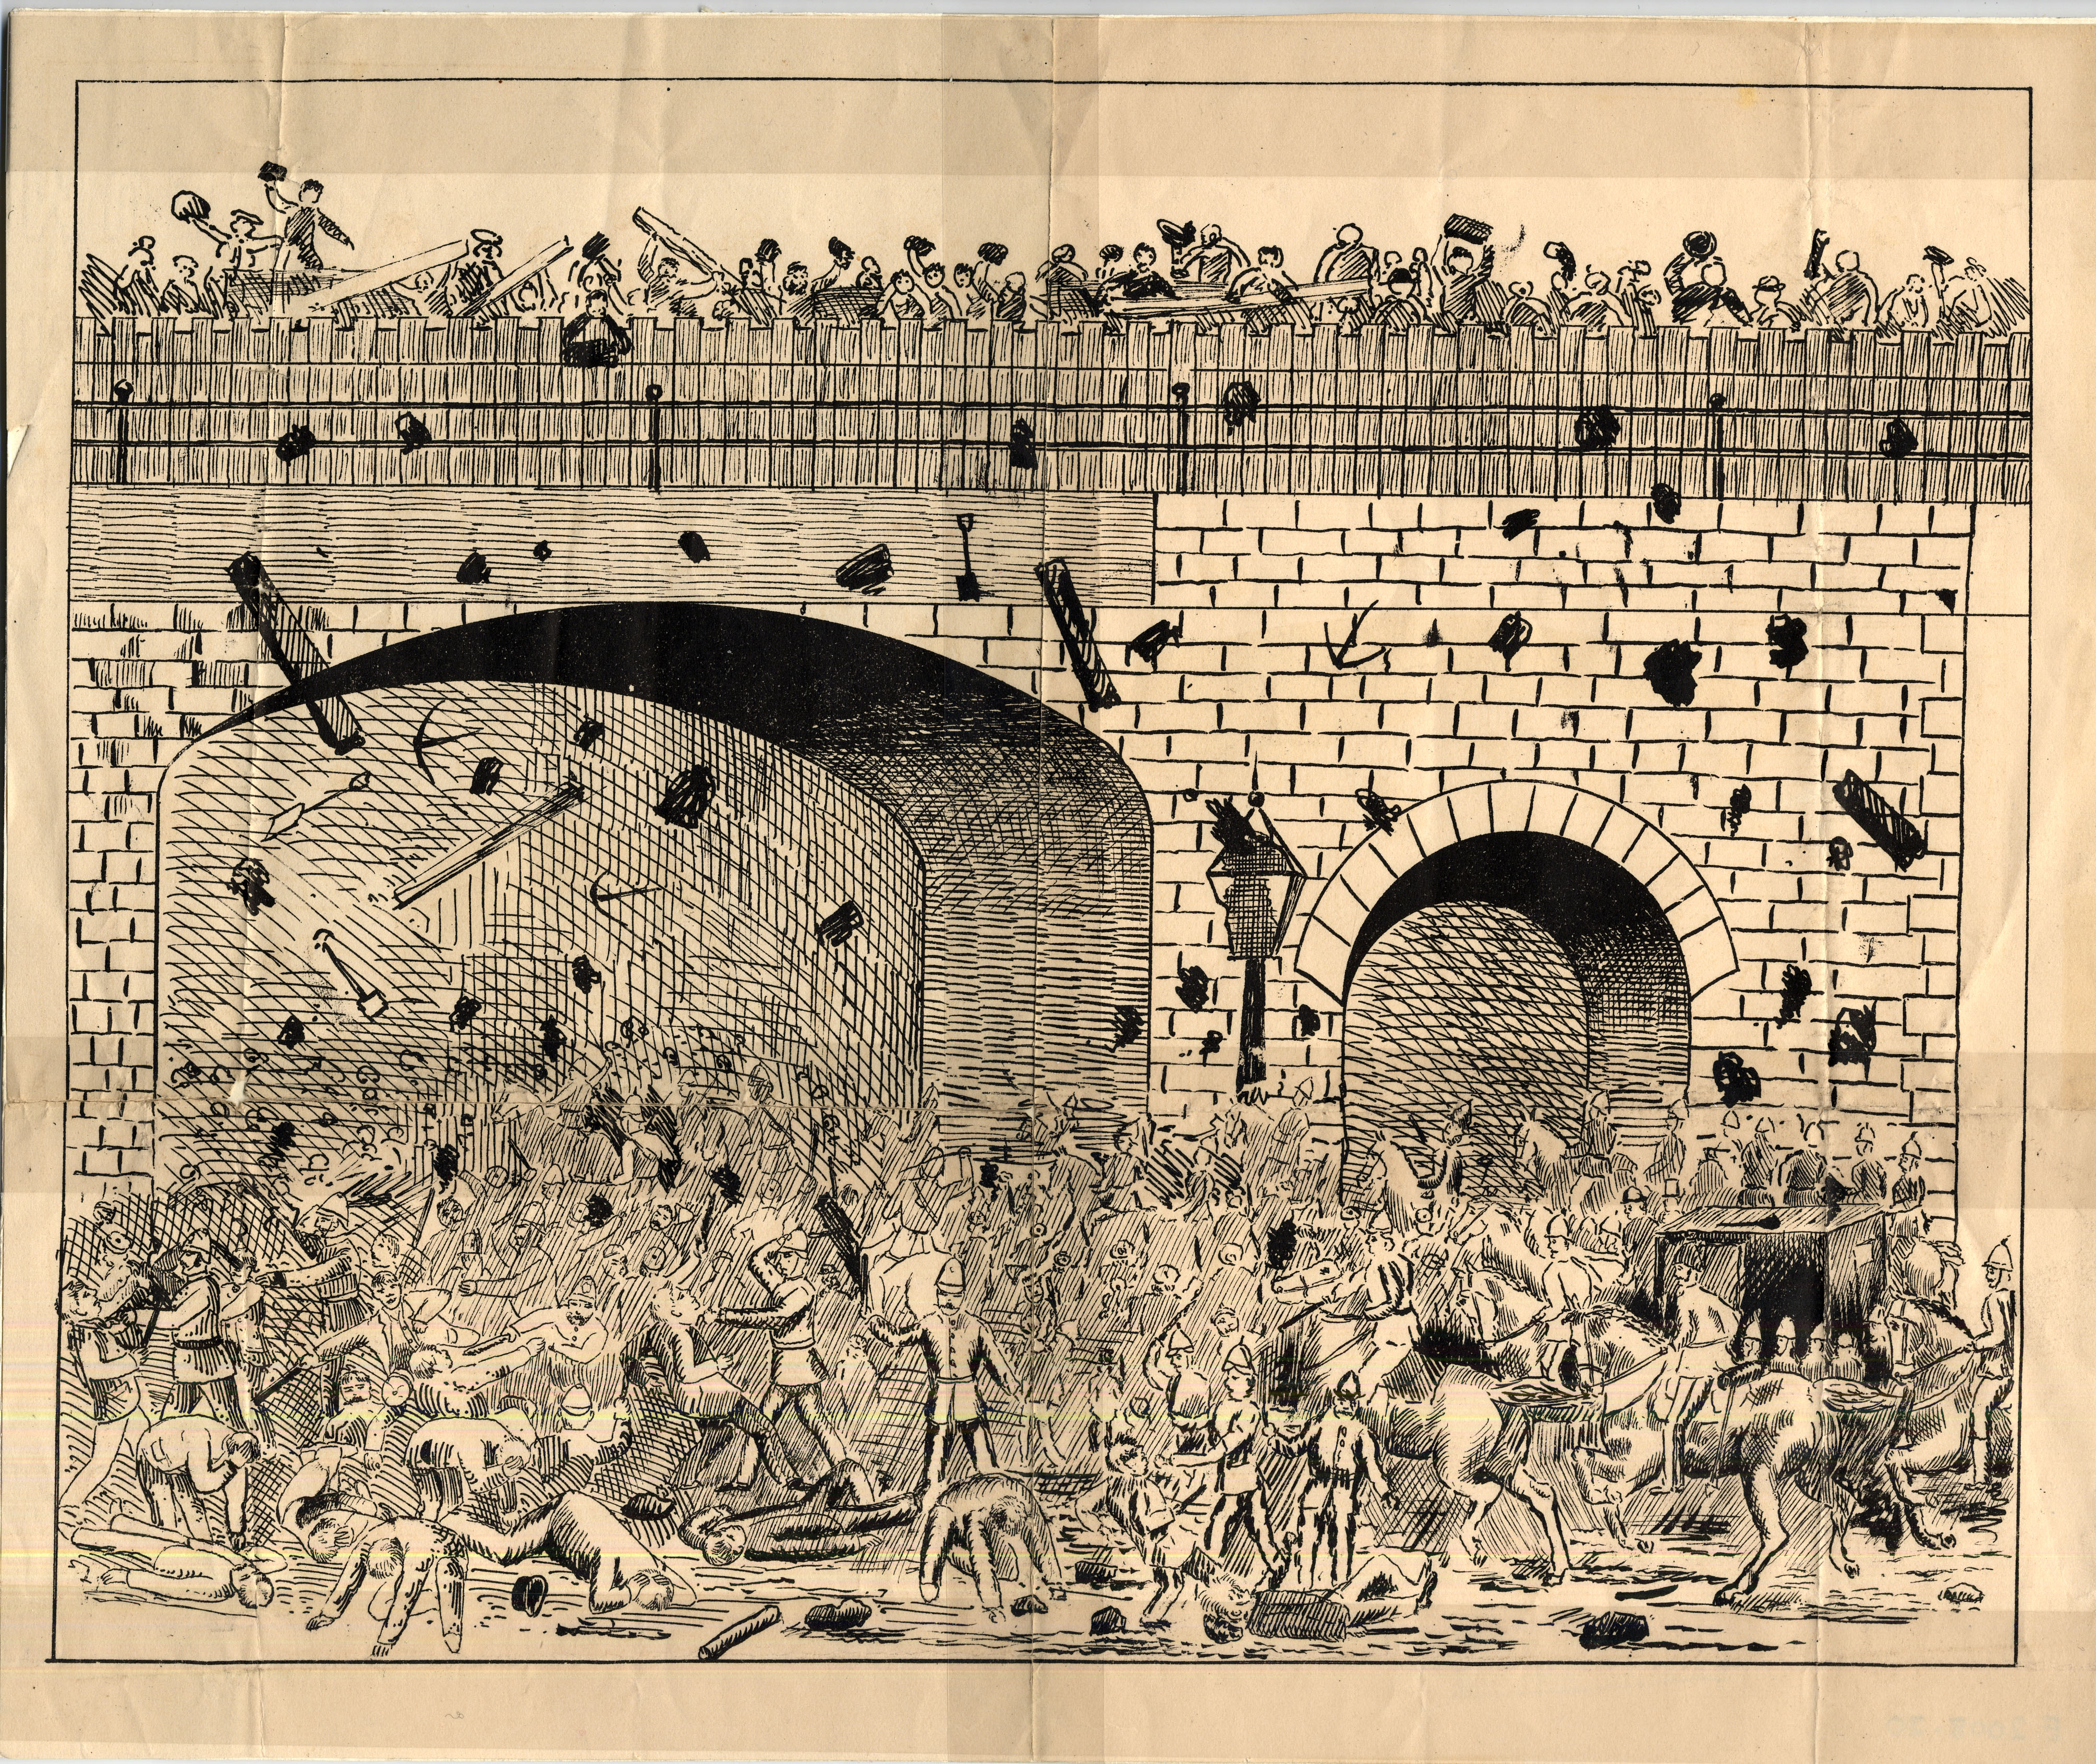 Black and white drawing showing a railway bridg with crowds of people both on the bridge and underneath it.  A range of debris is being thrown around and falling from the bridge, such as rocks, tools and railsay sleepers.